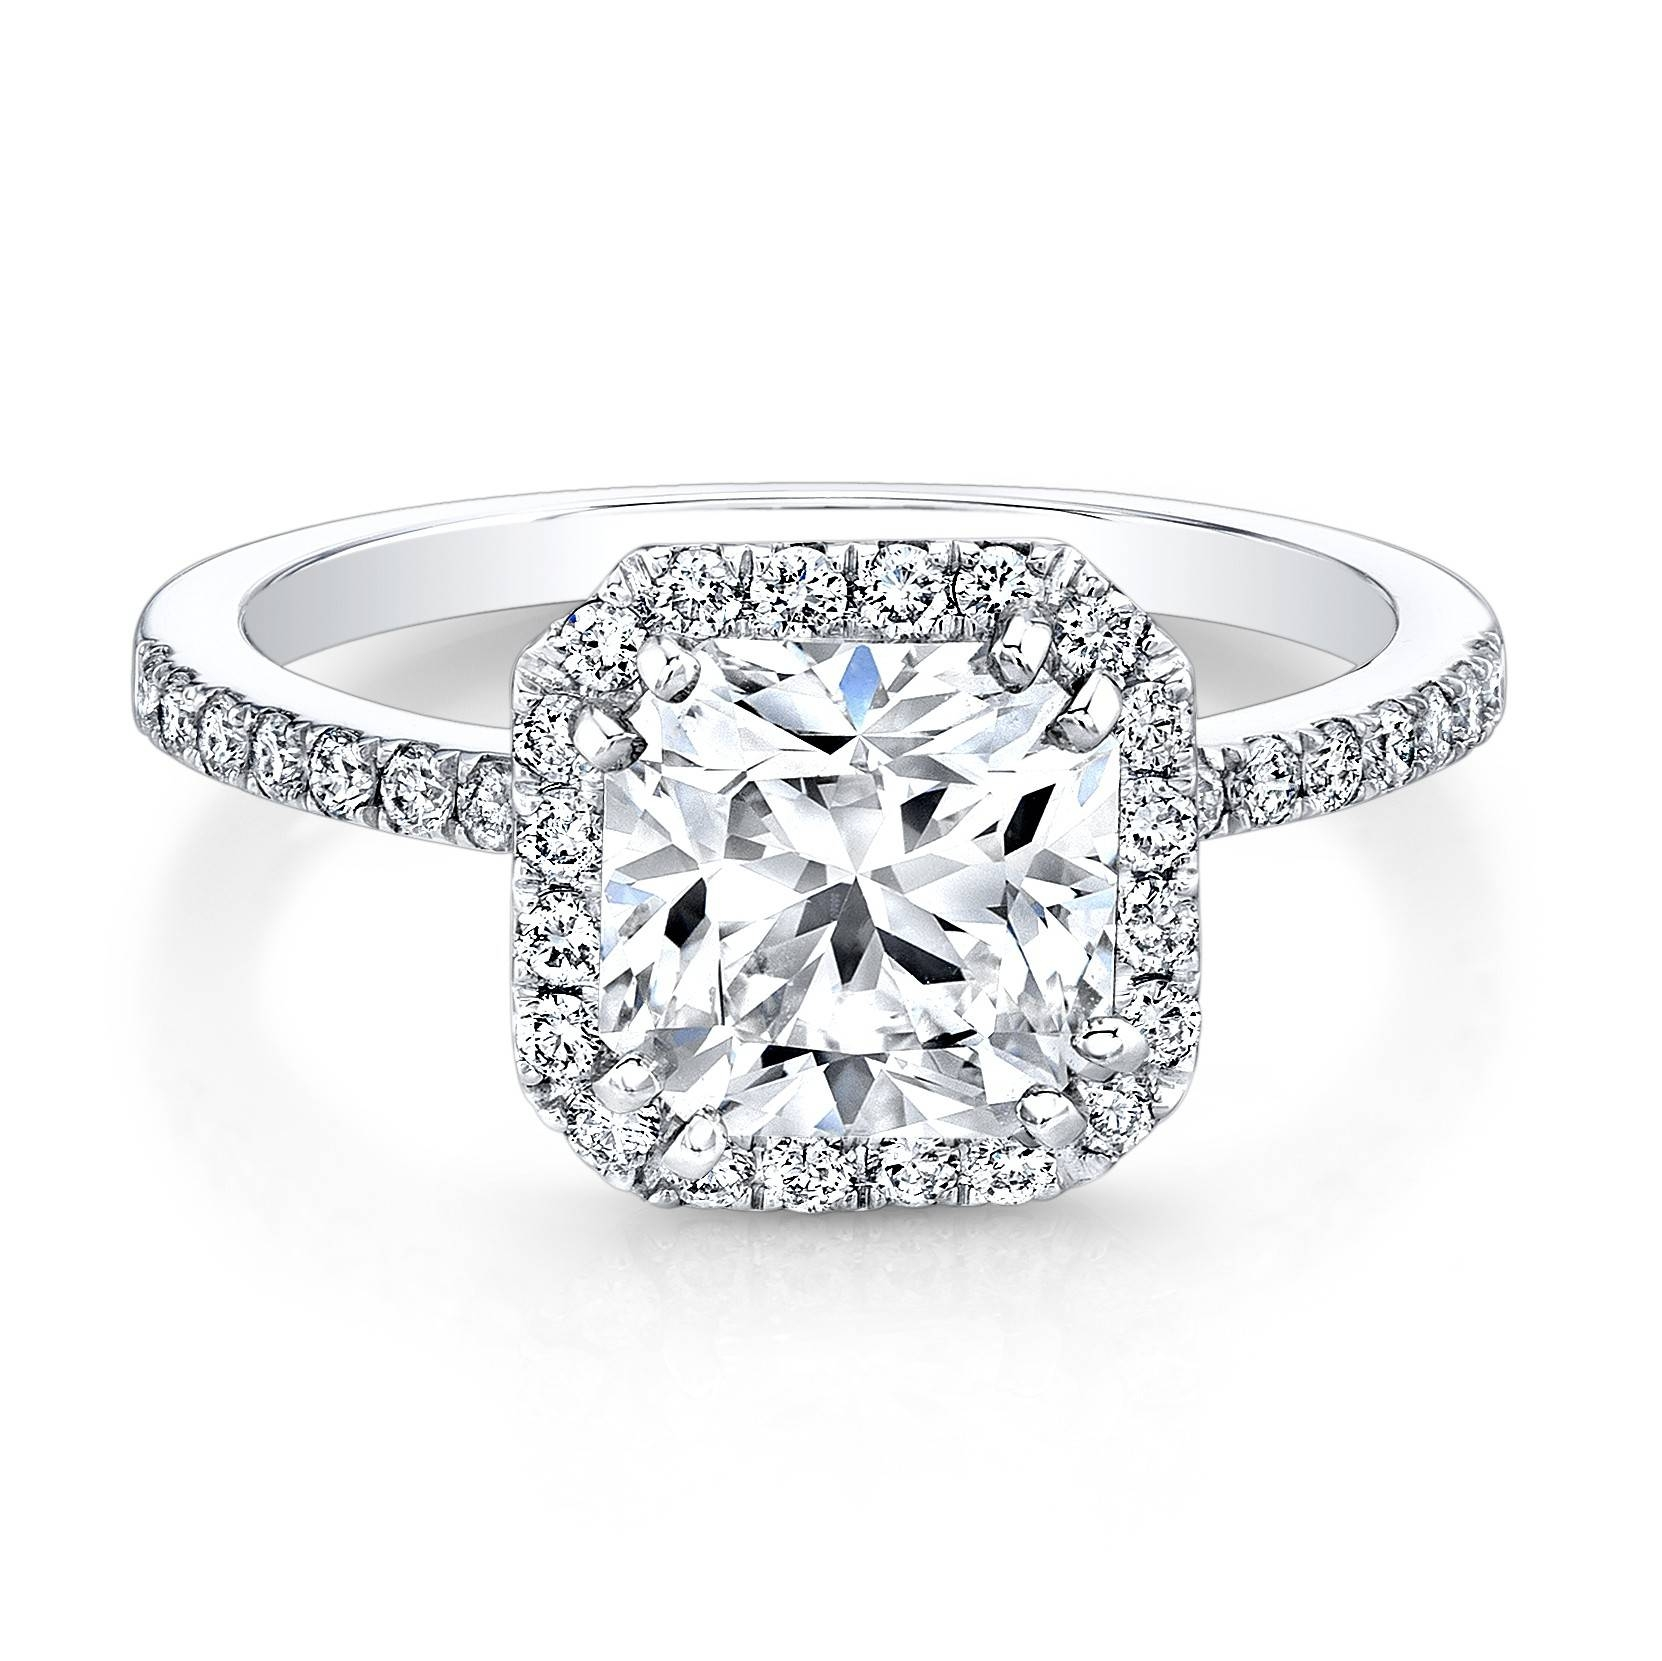 Square Engagement Rings With Diamond Band | Wedding, Promise With Regard To Wedding Rings With Diamond Band (View 14 of 15)